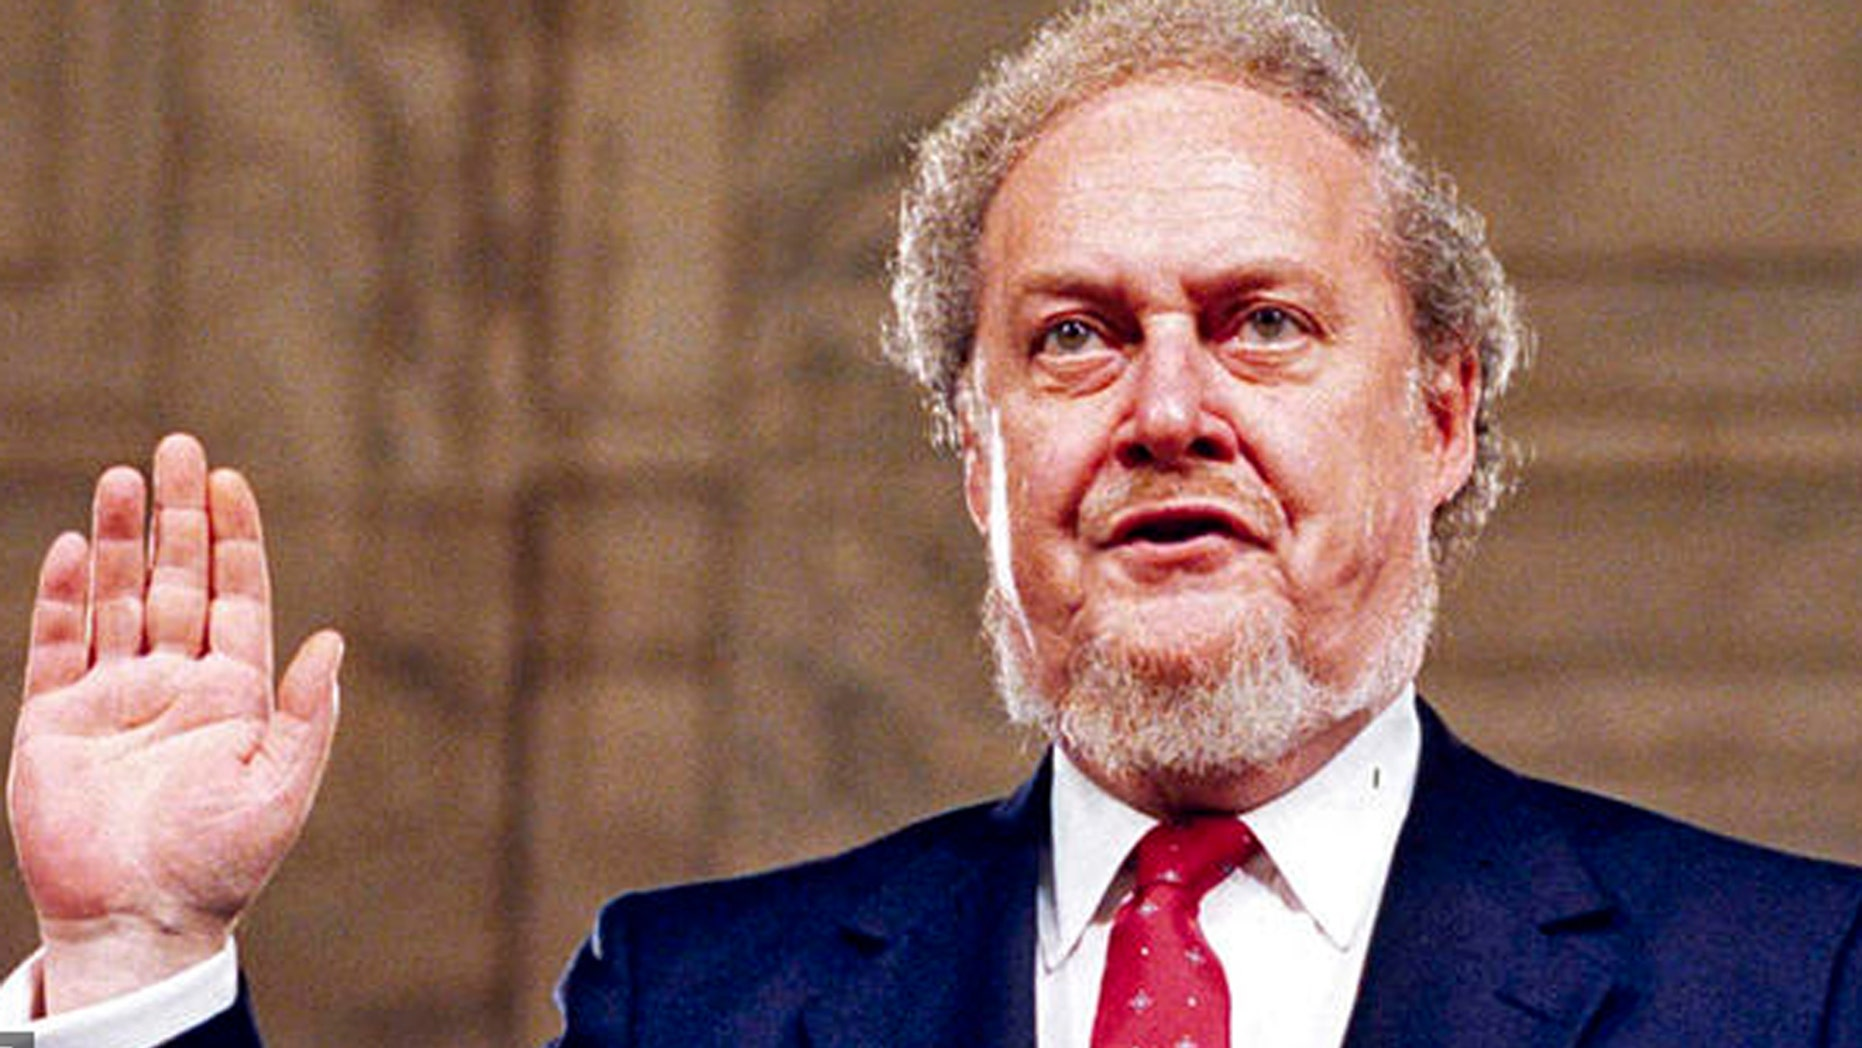 Judge Robert Bork's Supreme Court nomination was derailed 32 anni fa.